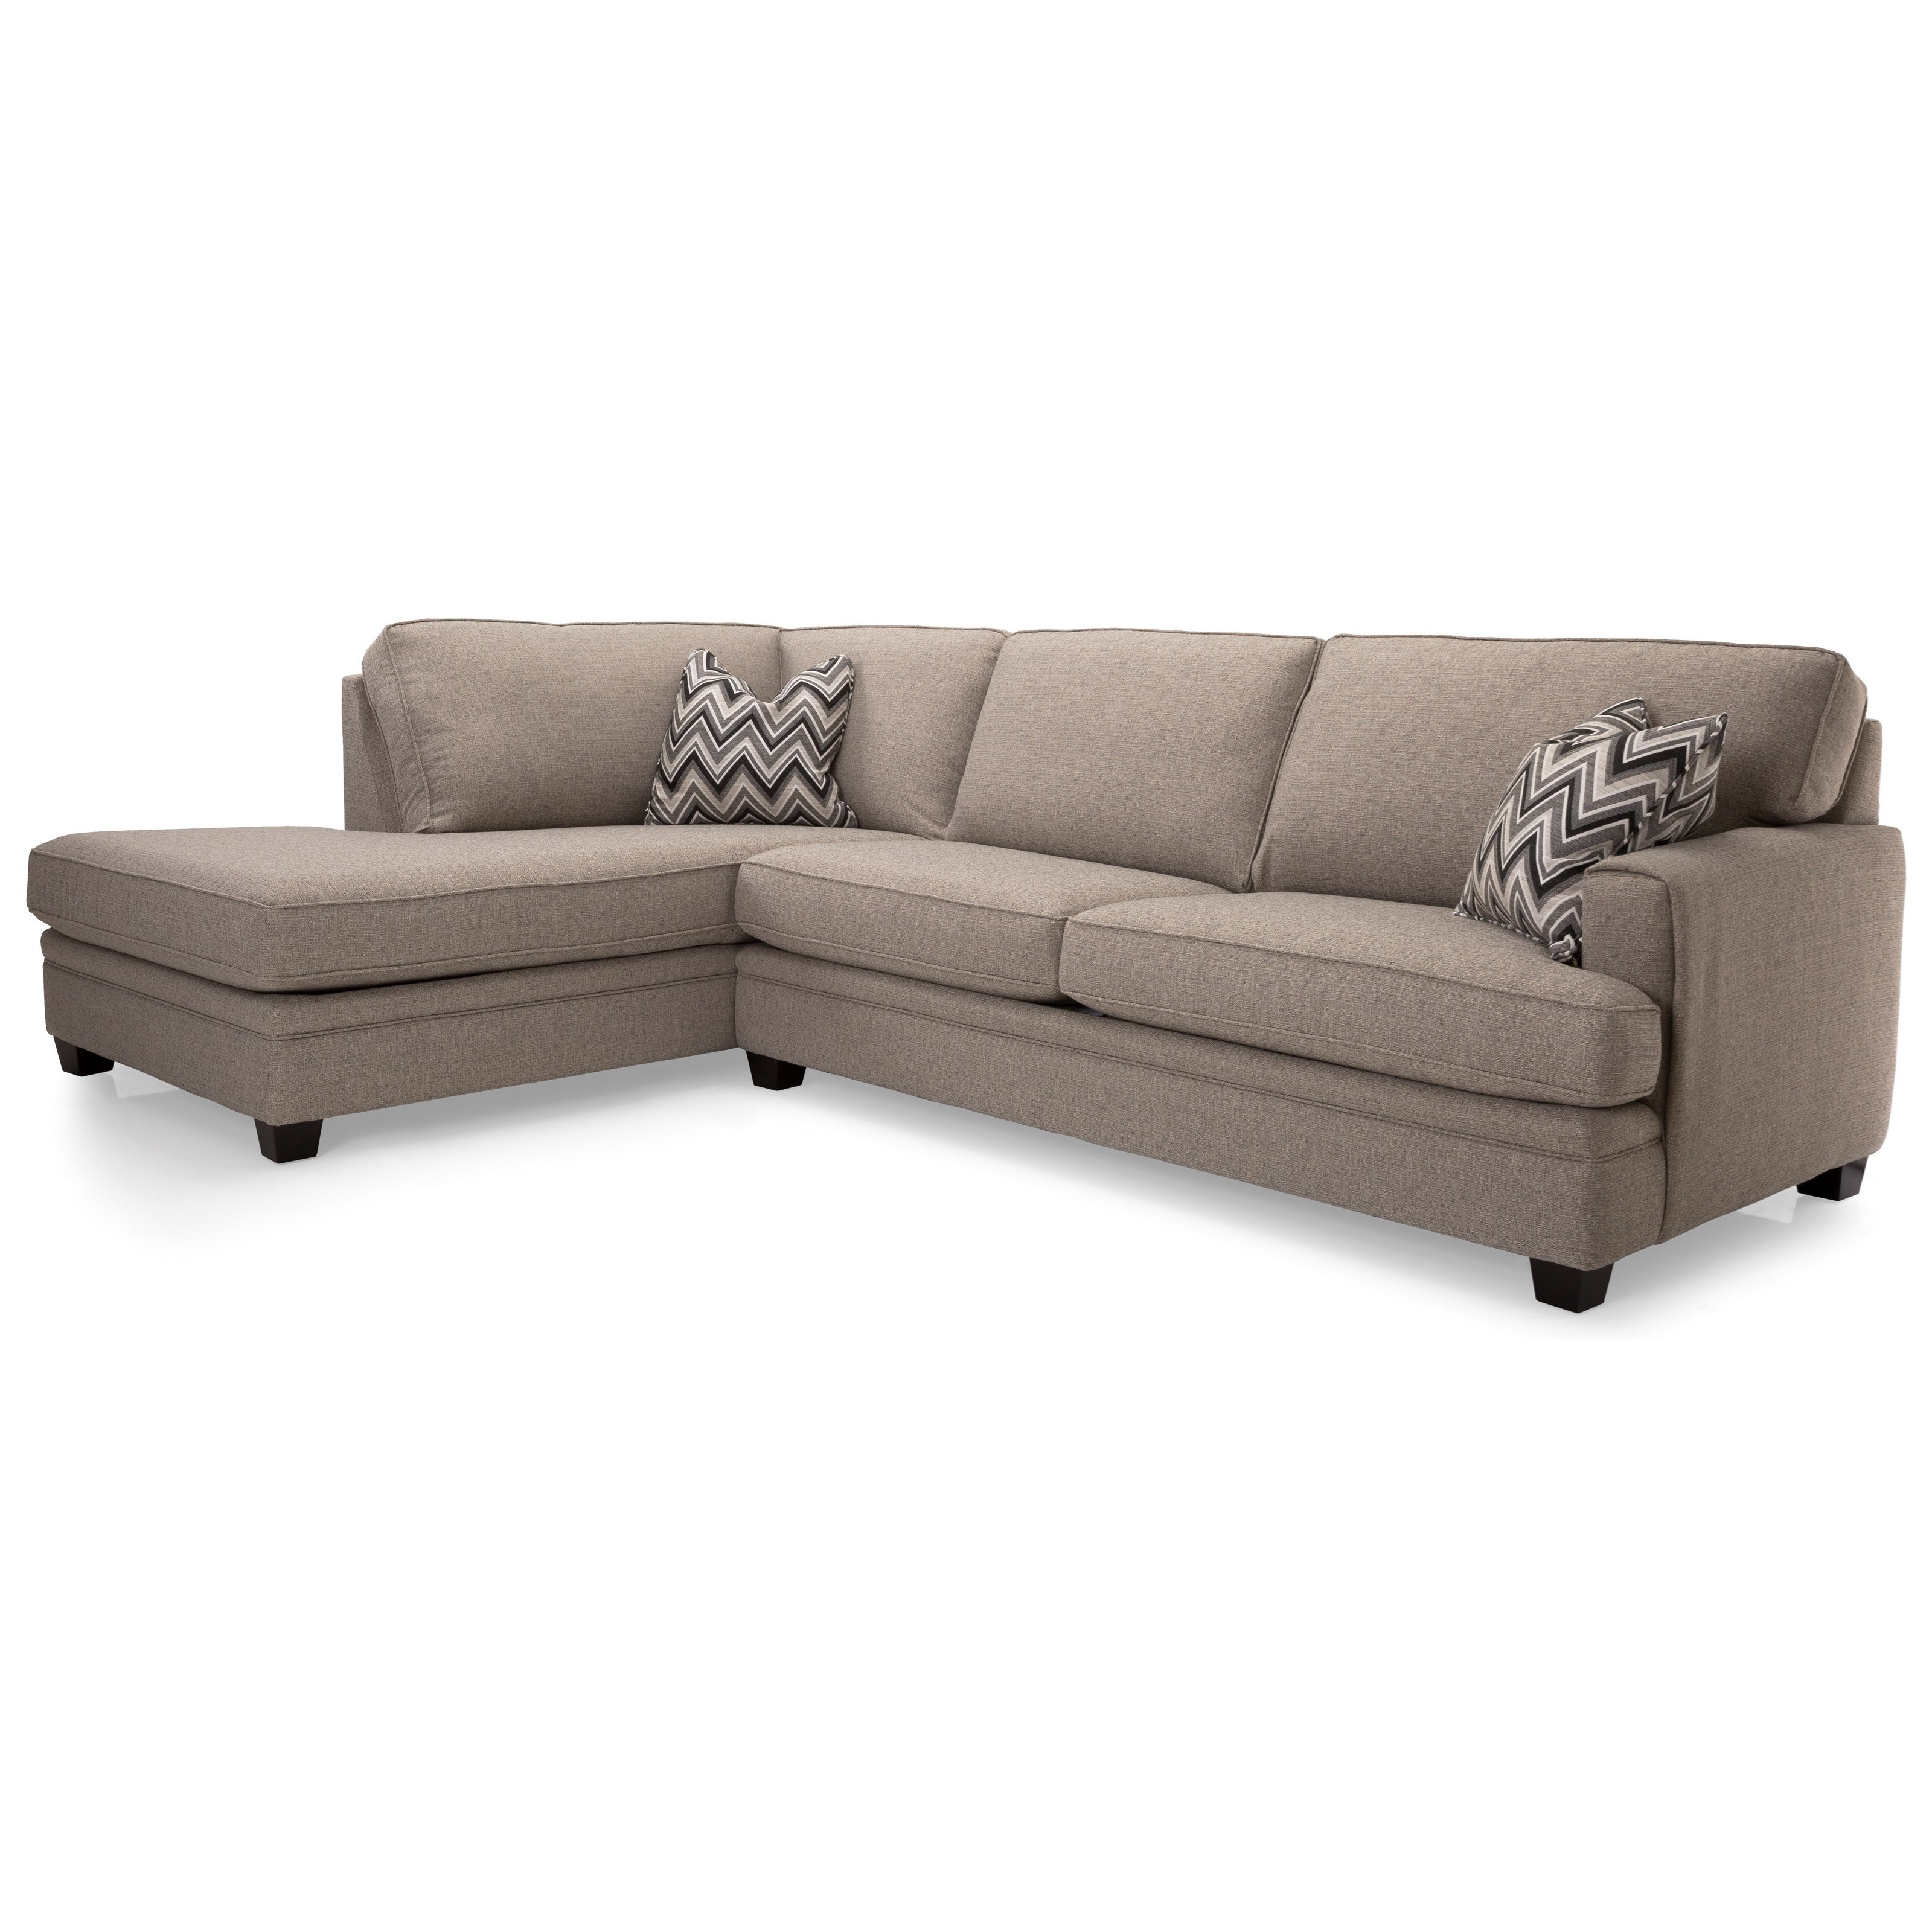 2697 Sectional Sofa by Decor-Rest at Rooms for Less